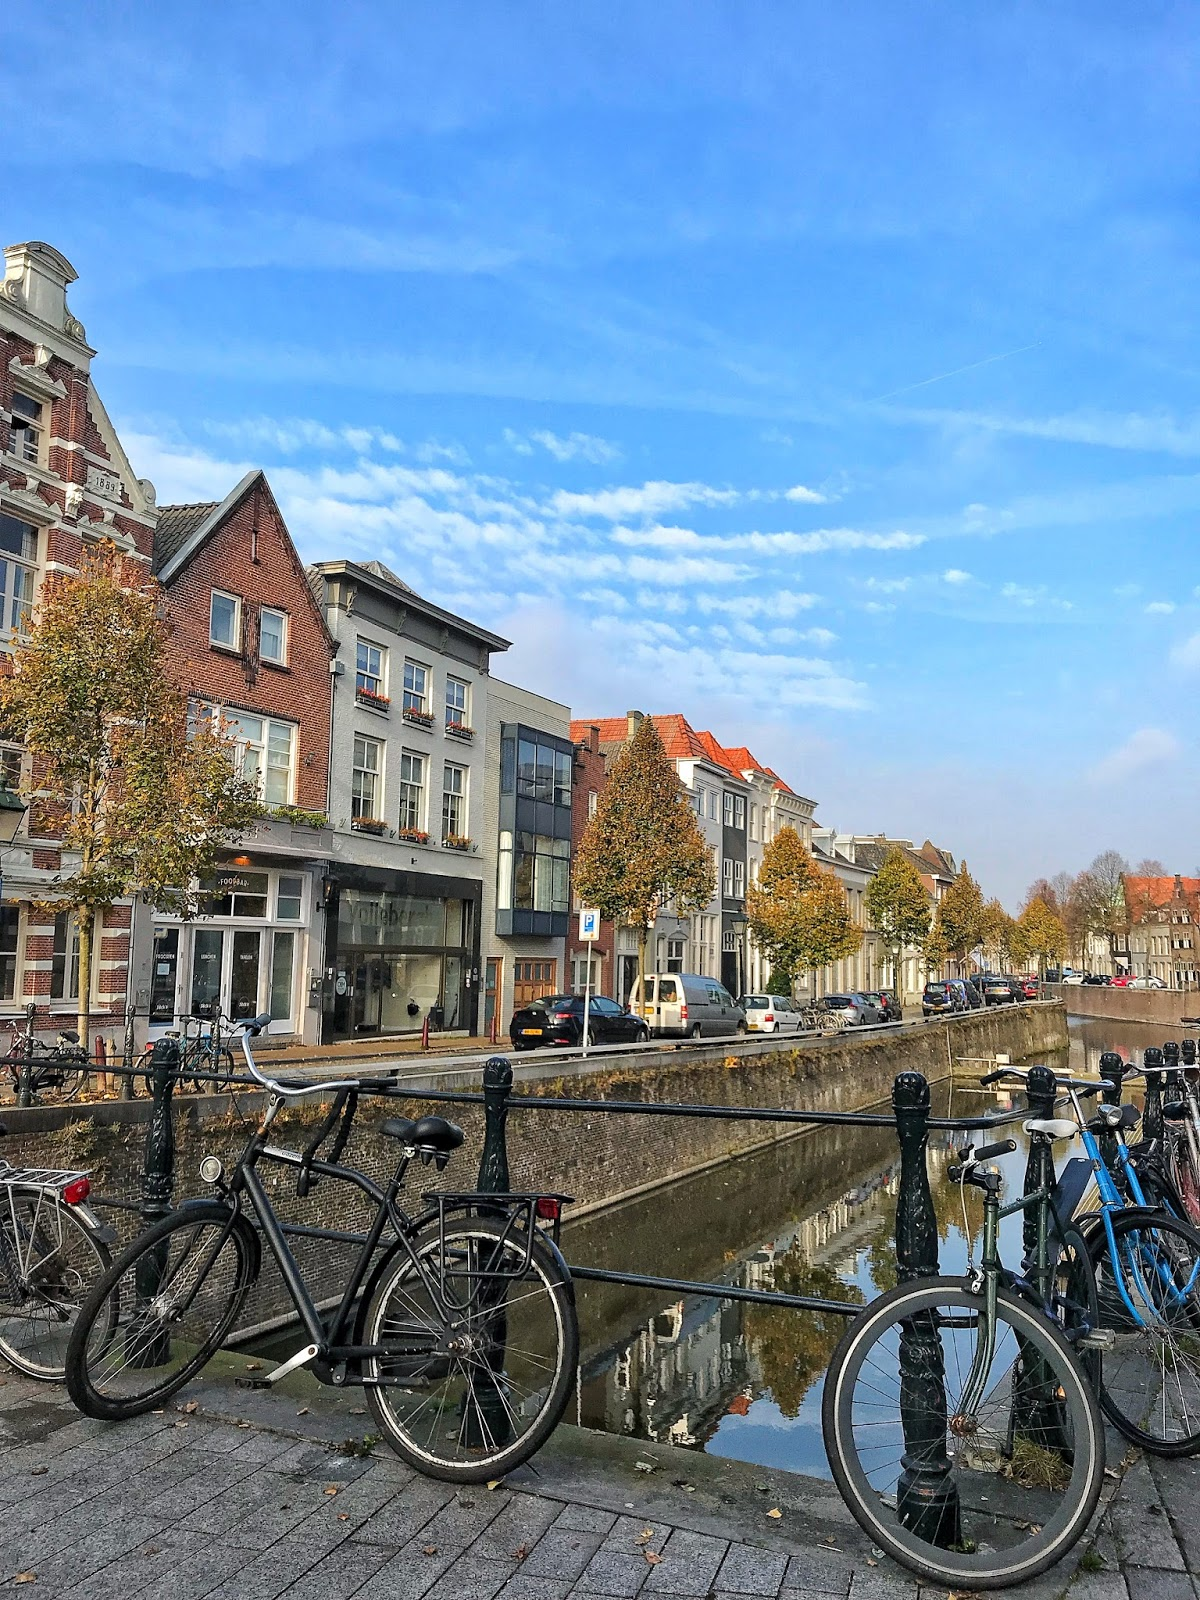 bikes and canal reflections in Den Bosch